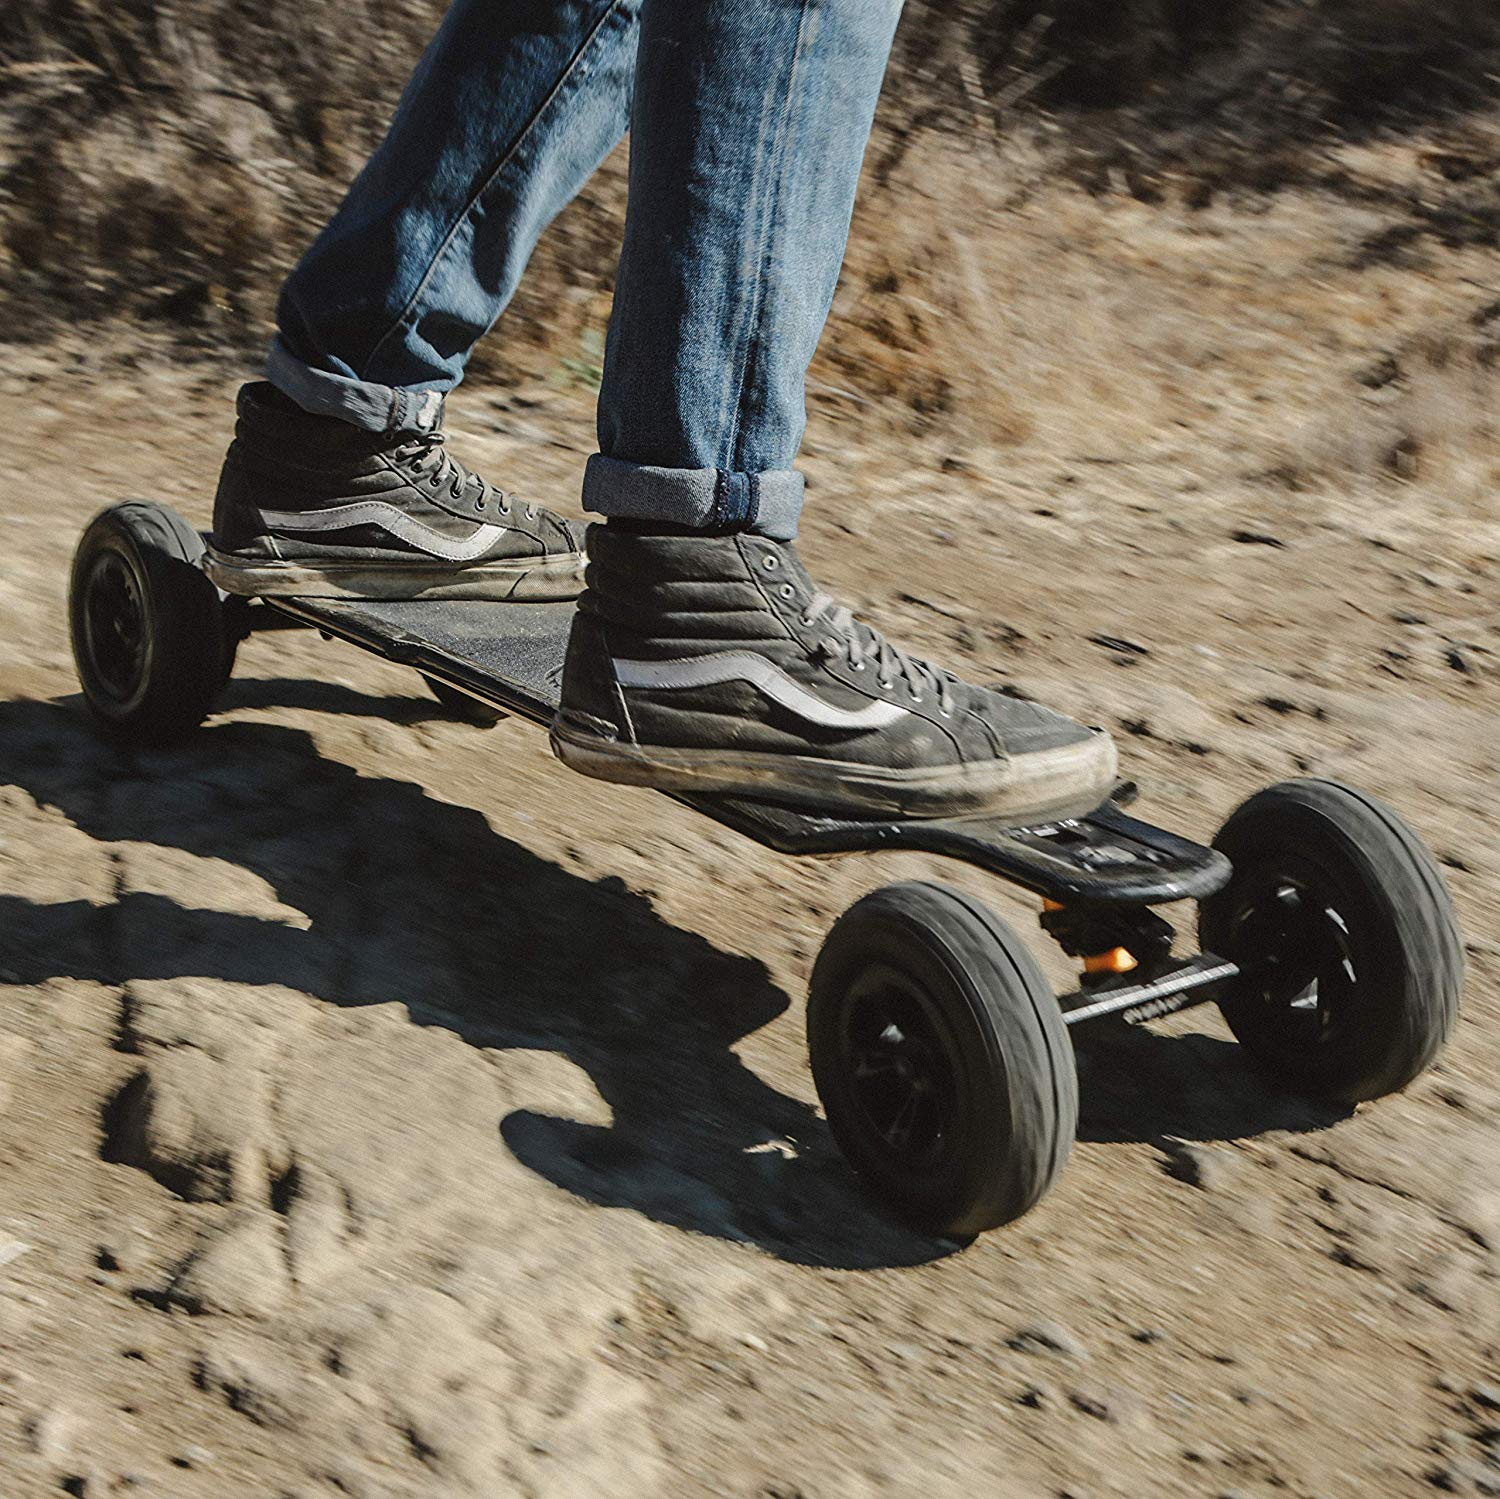 Carbon GT Series electric skateboard